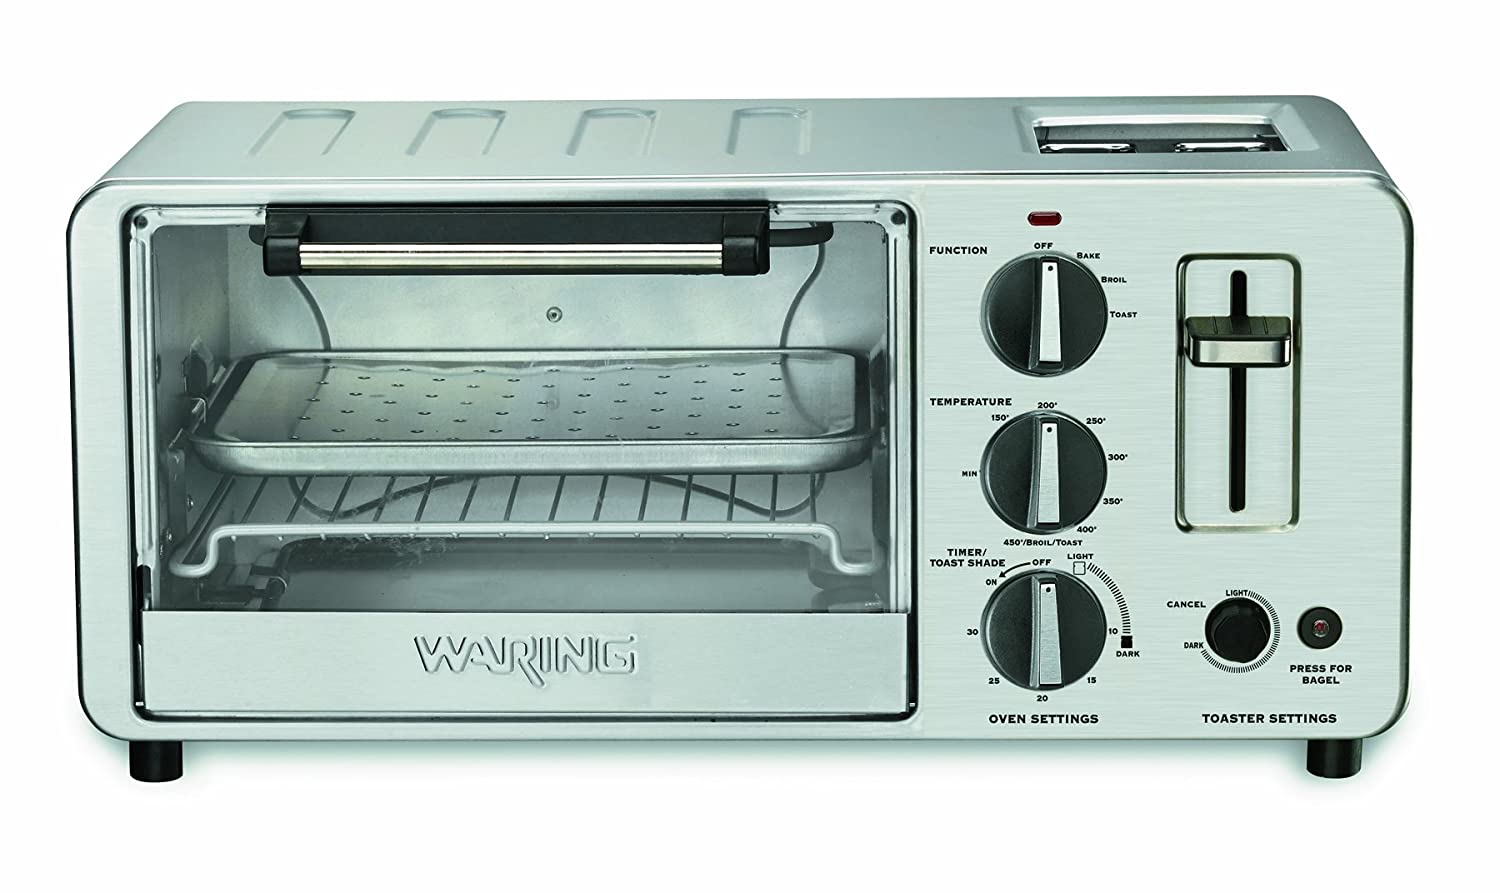 s combo one our touch microwaves by t of not endorsed to ovens don oven combination microwave or the buy in chef seen celebrity this best blumenthal tut and we heston crisp ve your pick at roll sage eyes quick uk it toaster believe